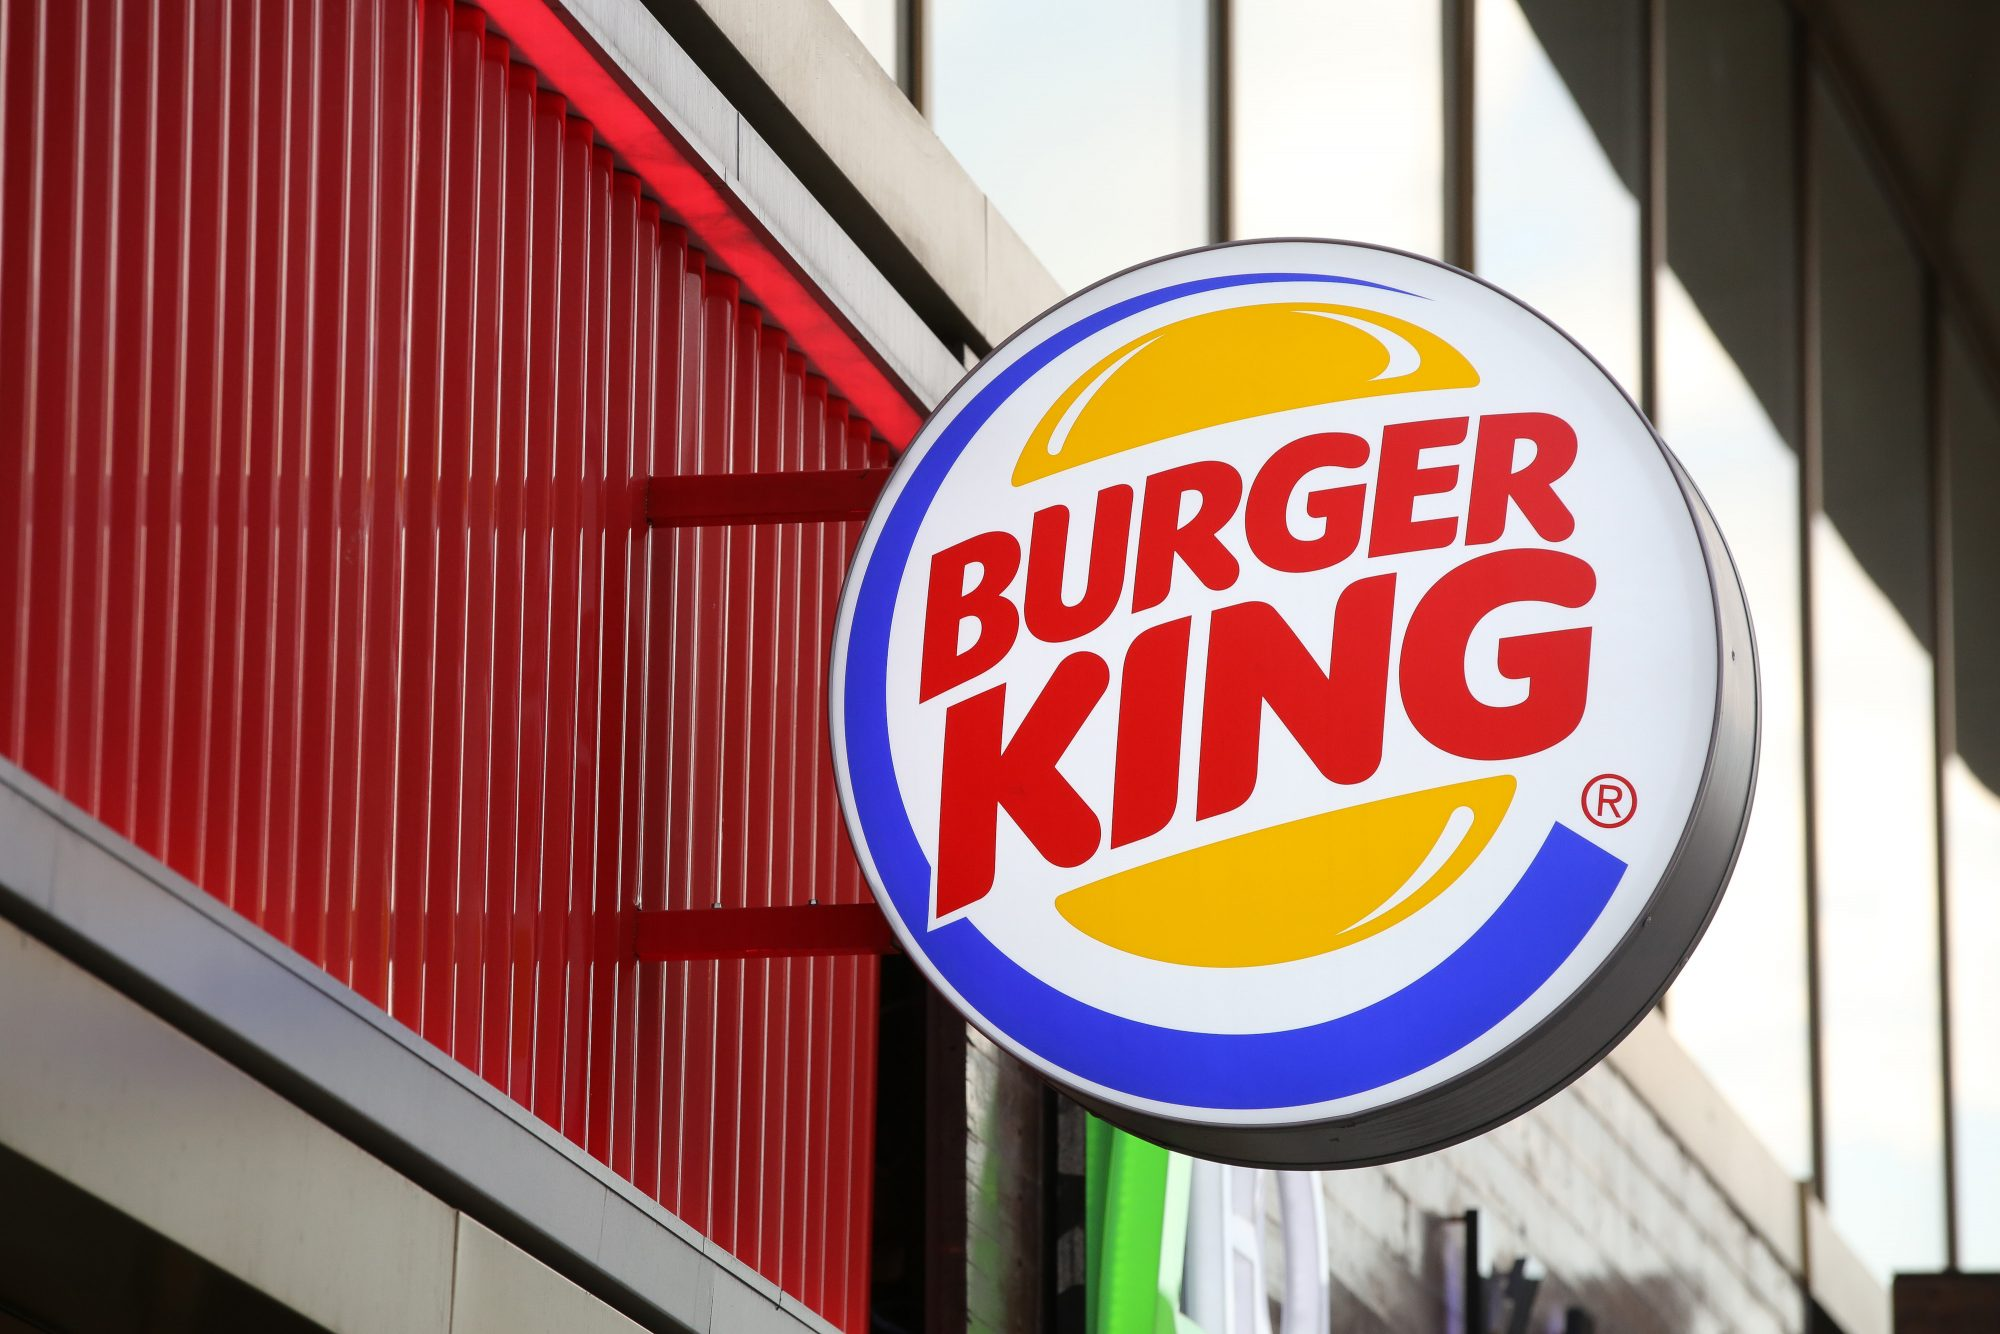 This Burger King PSA Tackles Youth Bullying With a Powerful Social Experiment